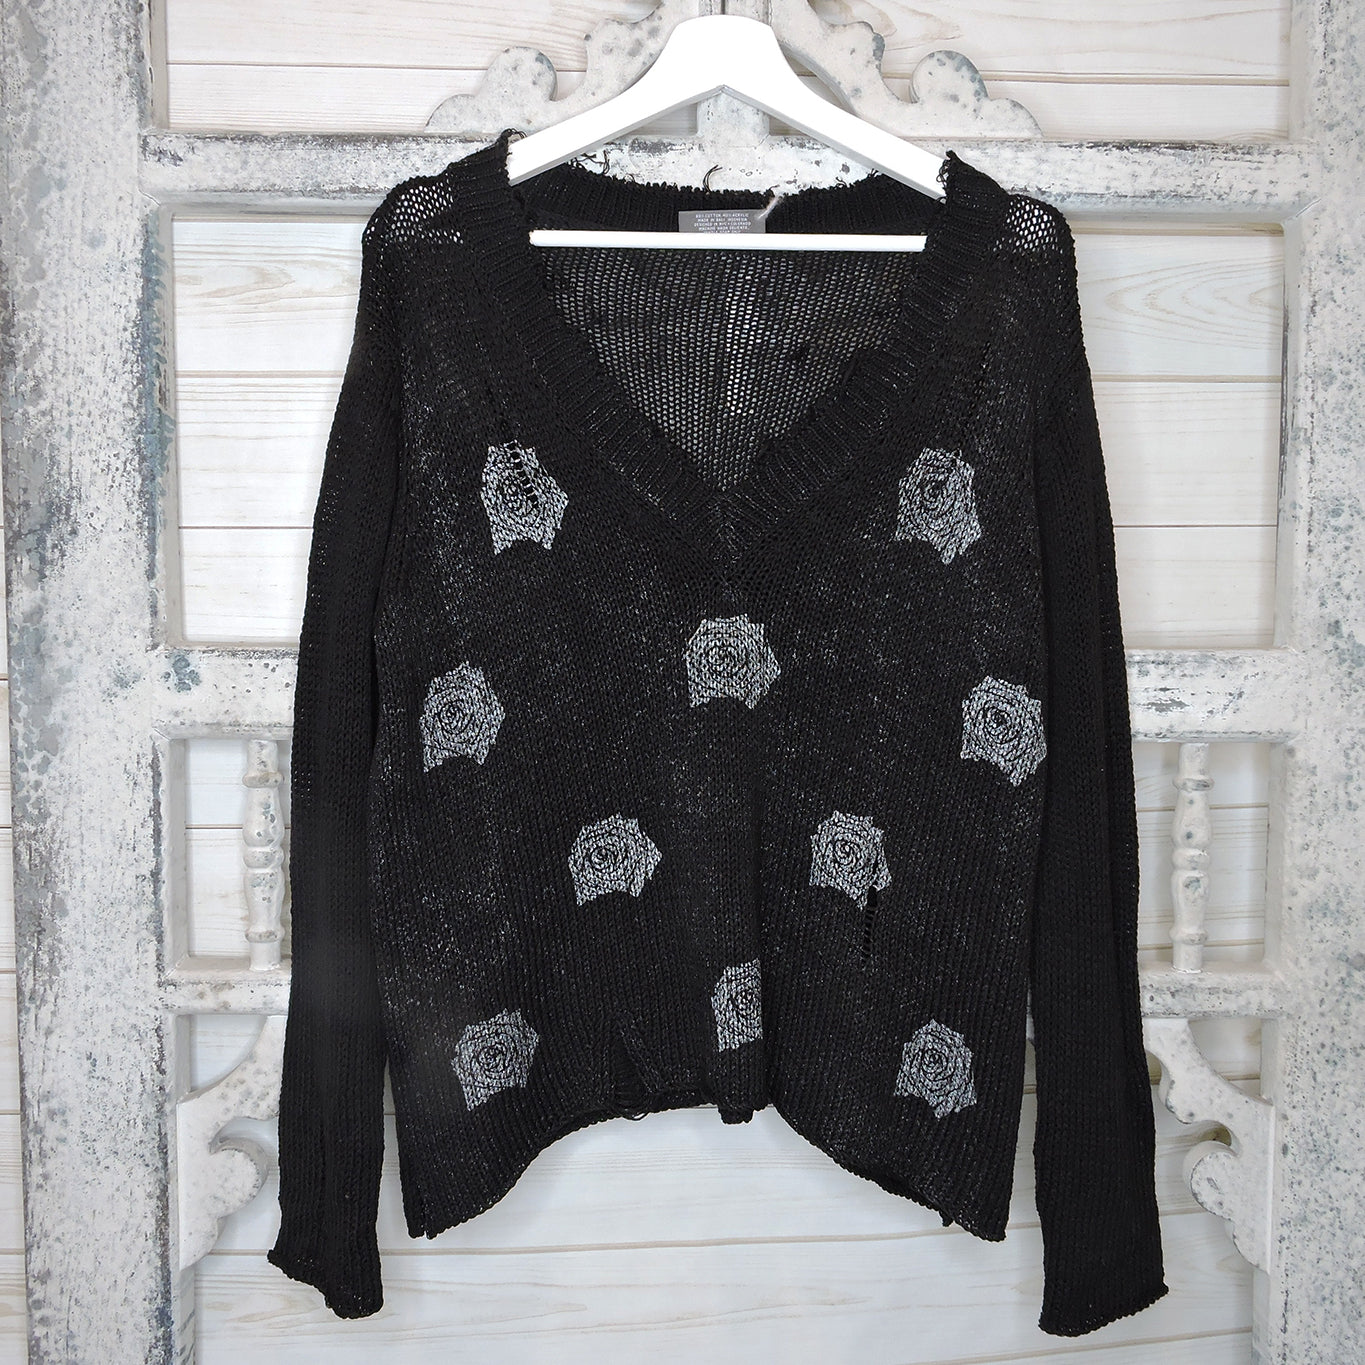 Destroyed Rose Sweater - Blackbird General Store